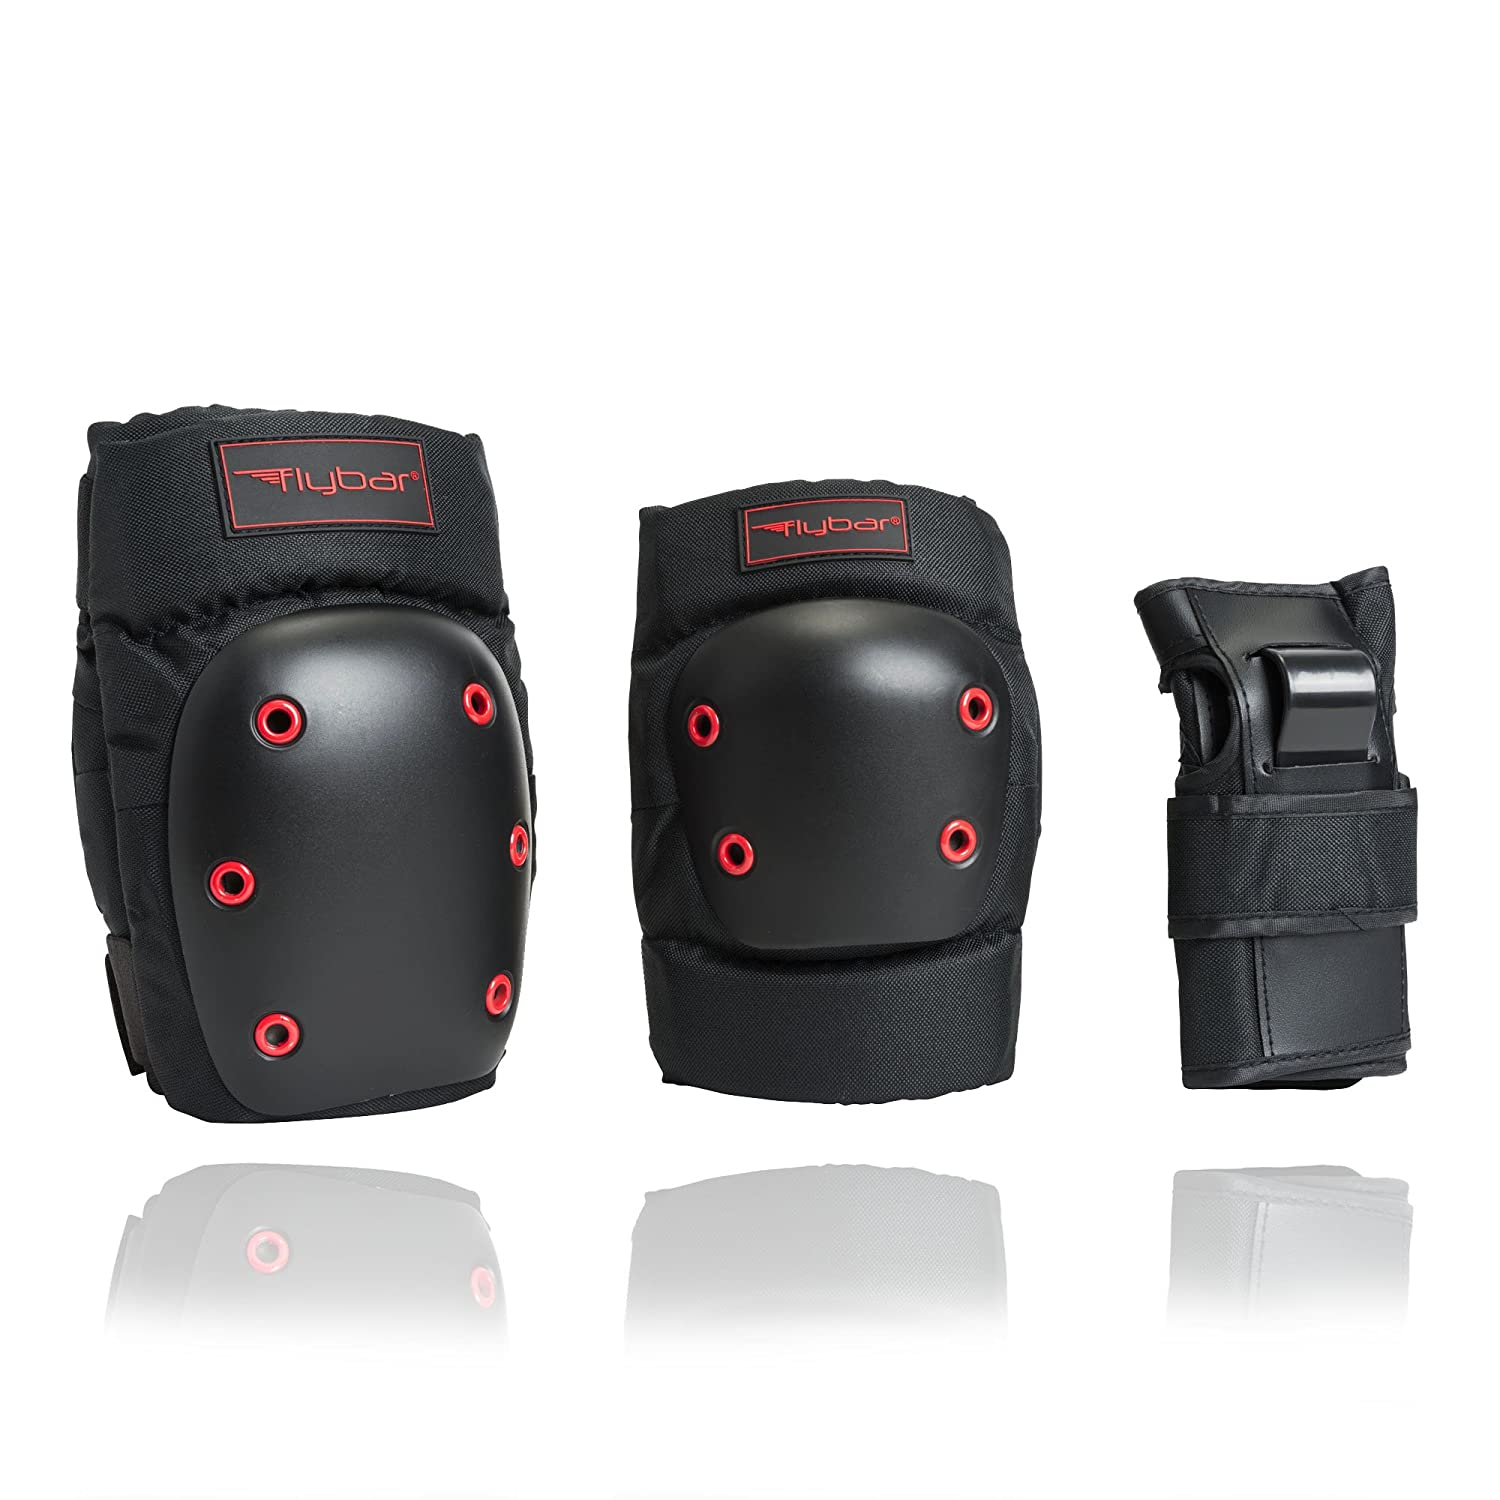 Flybar Knee and Elbow Pads, Wrist Guards Protective Safety Gear Set – Multi Sport Protection for Skateboarding, BMX, Pogoing, Inline Skating, Scooter – Kids, Teen Adult Sizes